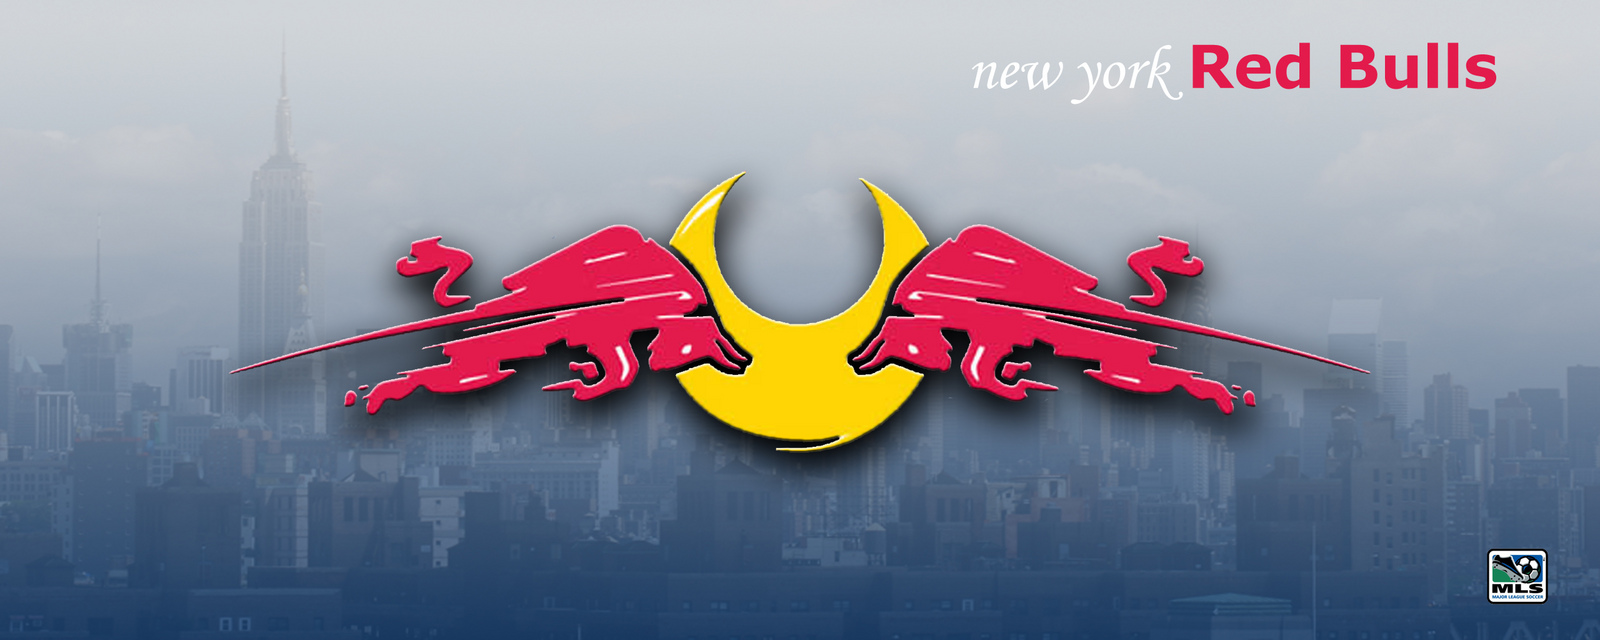 Free Download New York Red Bulls Wallpaper 1600x640 For Your